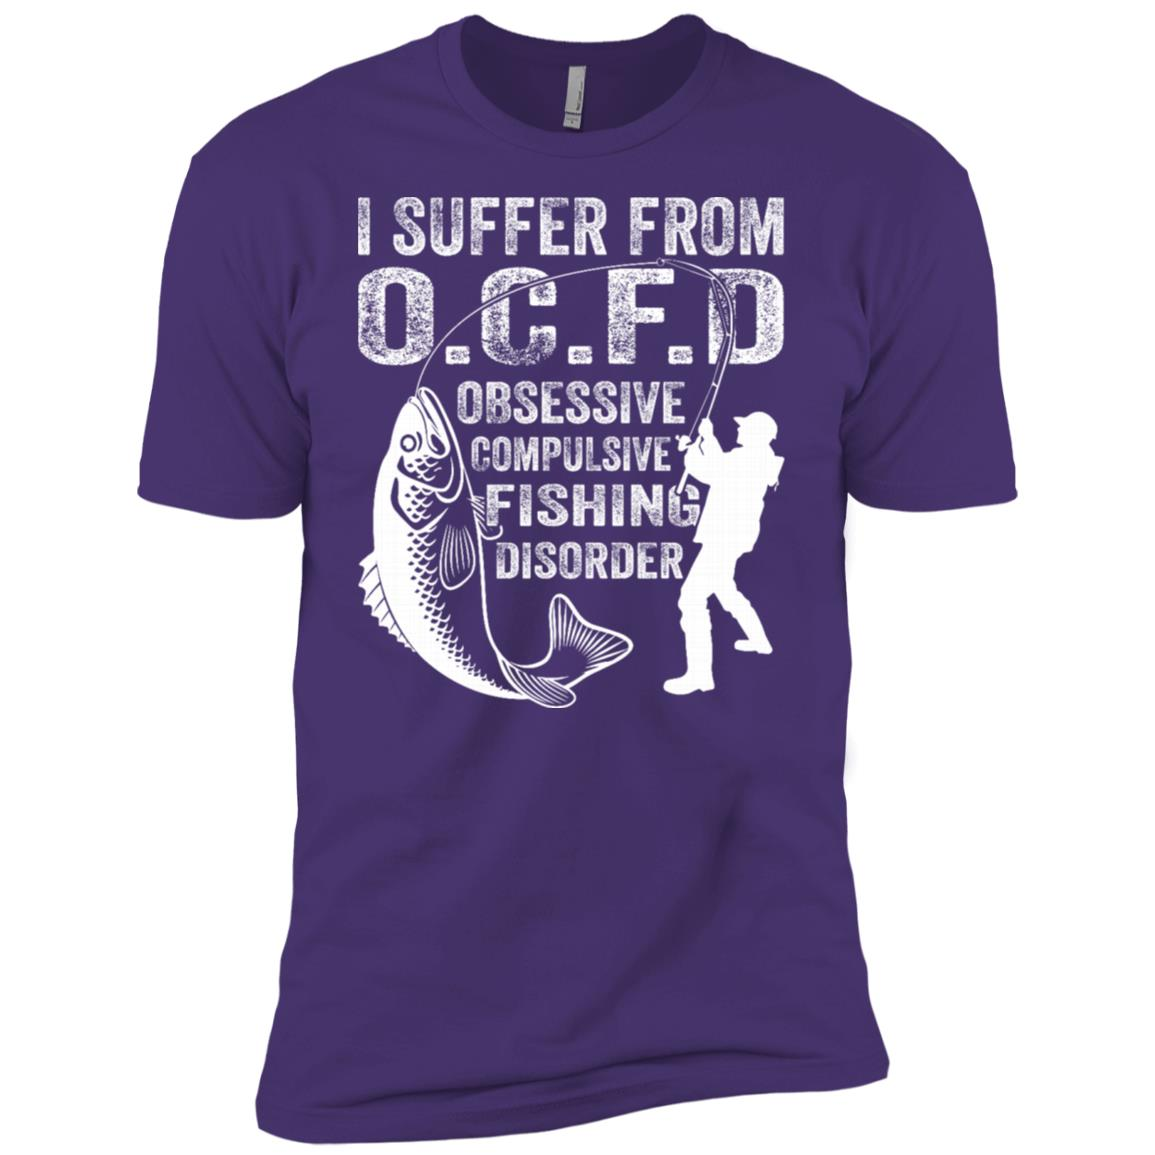 I Suffer From O C F D- Obsessive Compulsive Fishing Disorder Men Short Sleeve T-Shirt